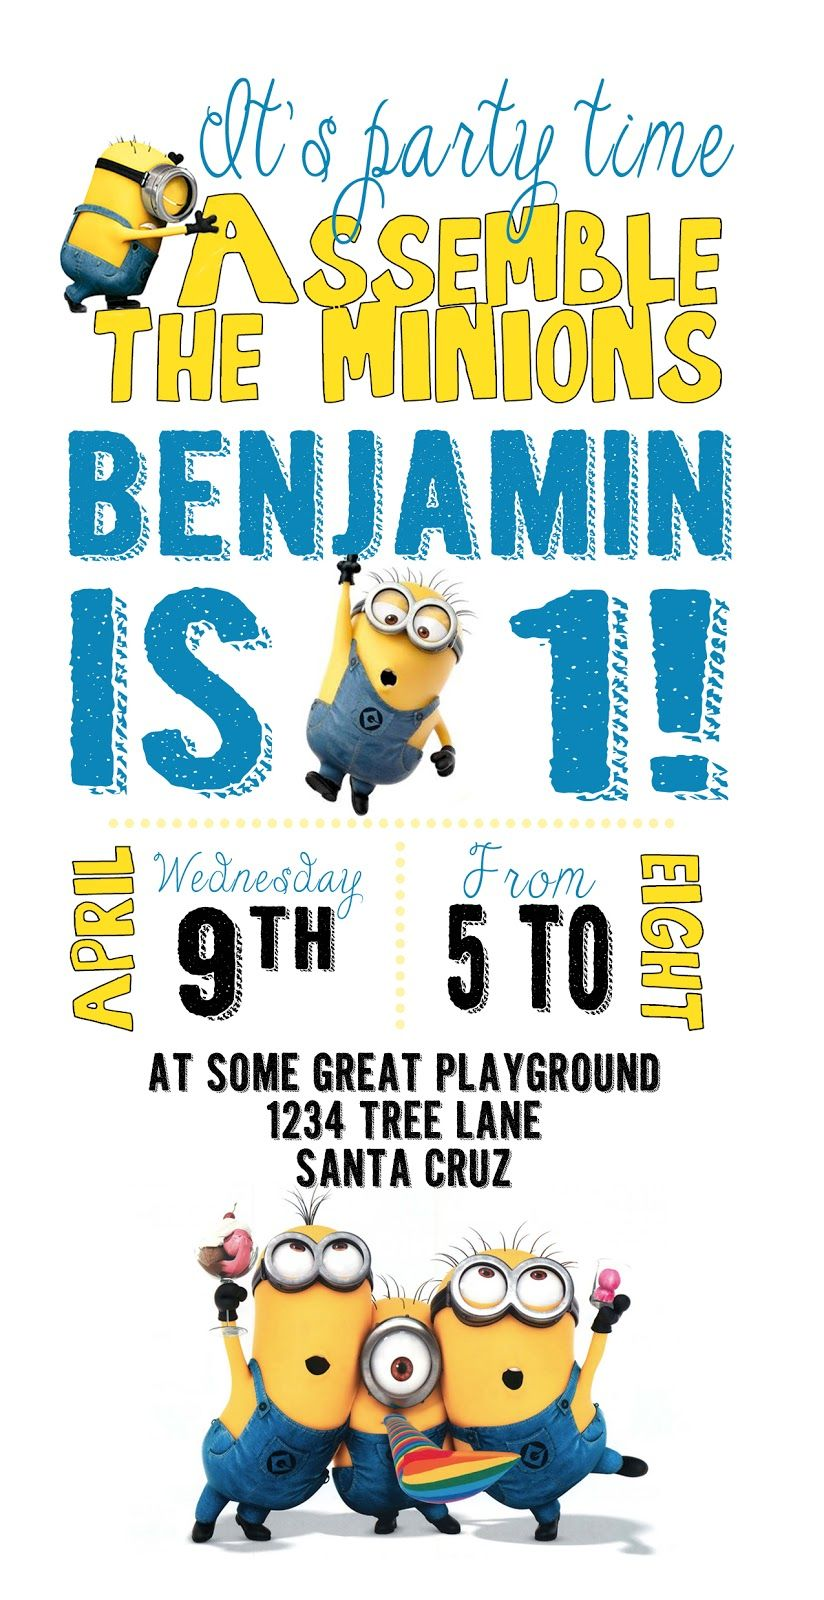 graphic relating to Minions Printable Invitations titled Do-it-yourself Layout Den: Minion birthday get together with absolutely free printables